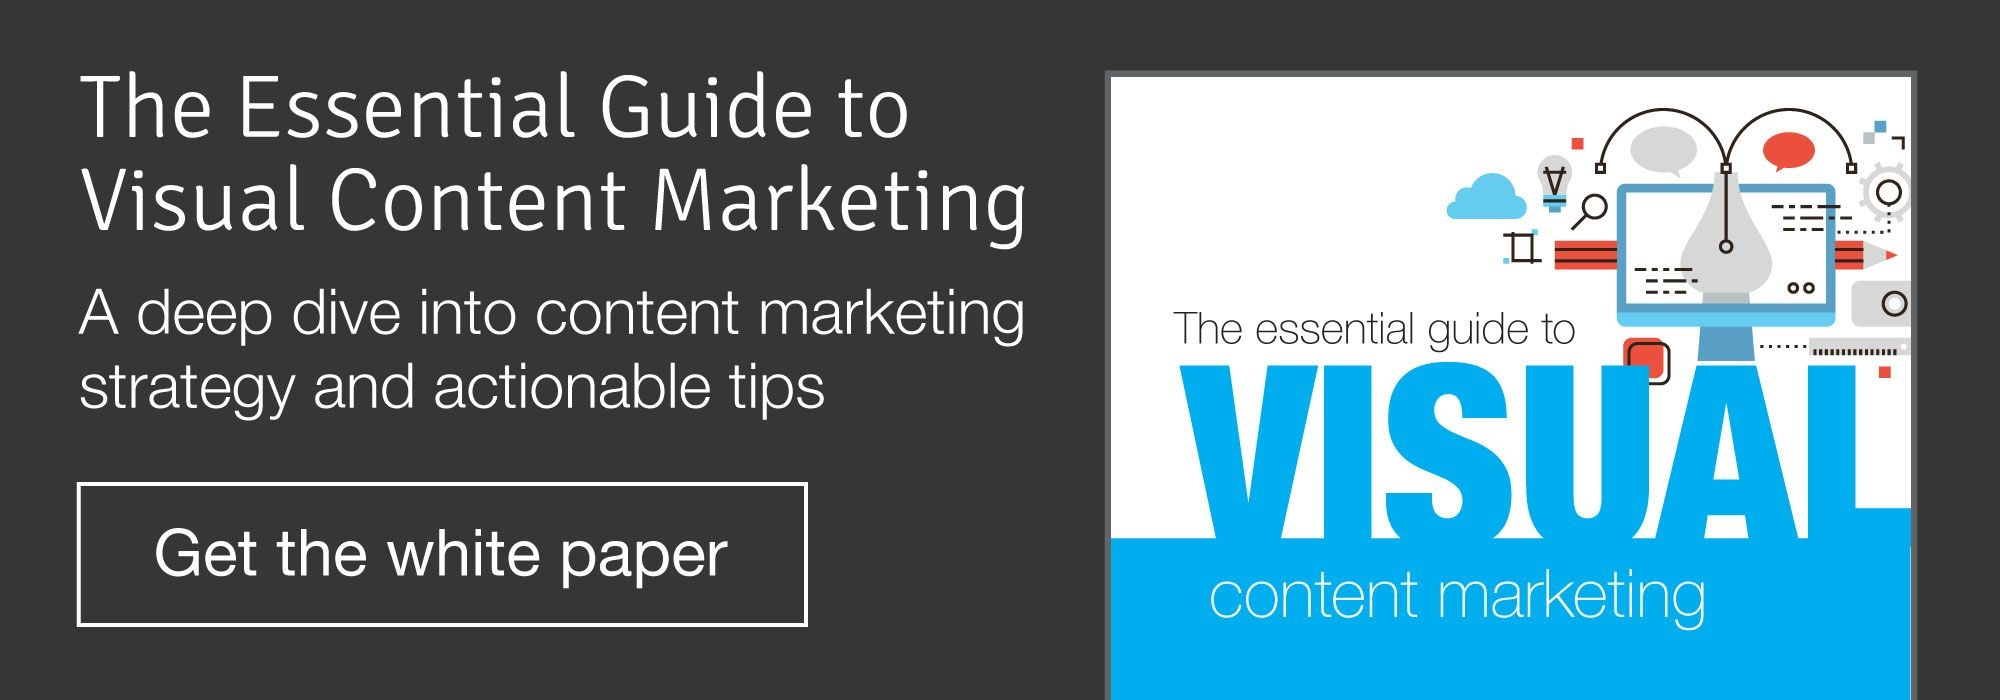 essential guide to visual content marketing